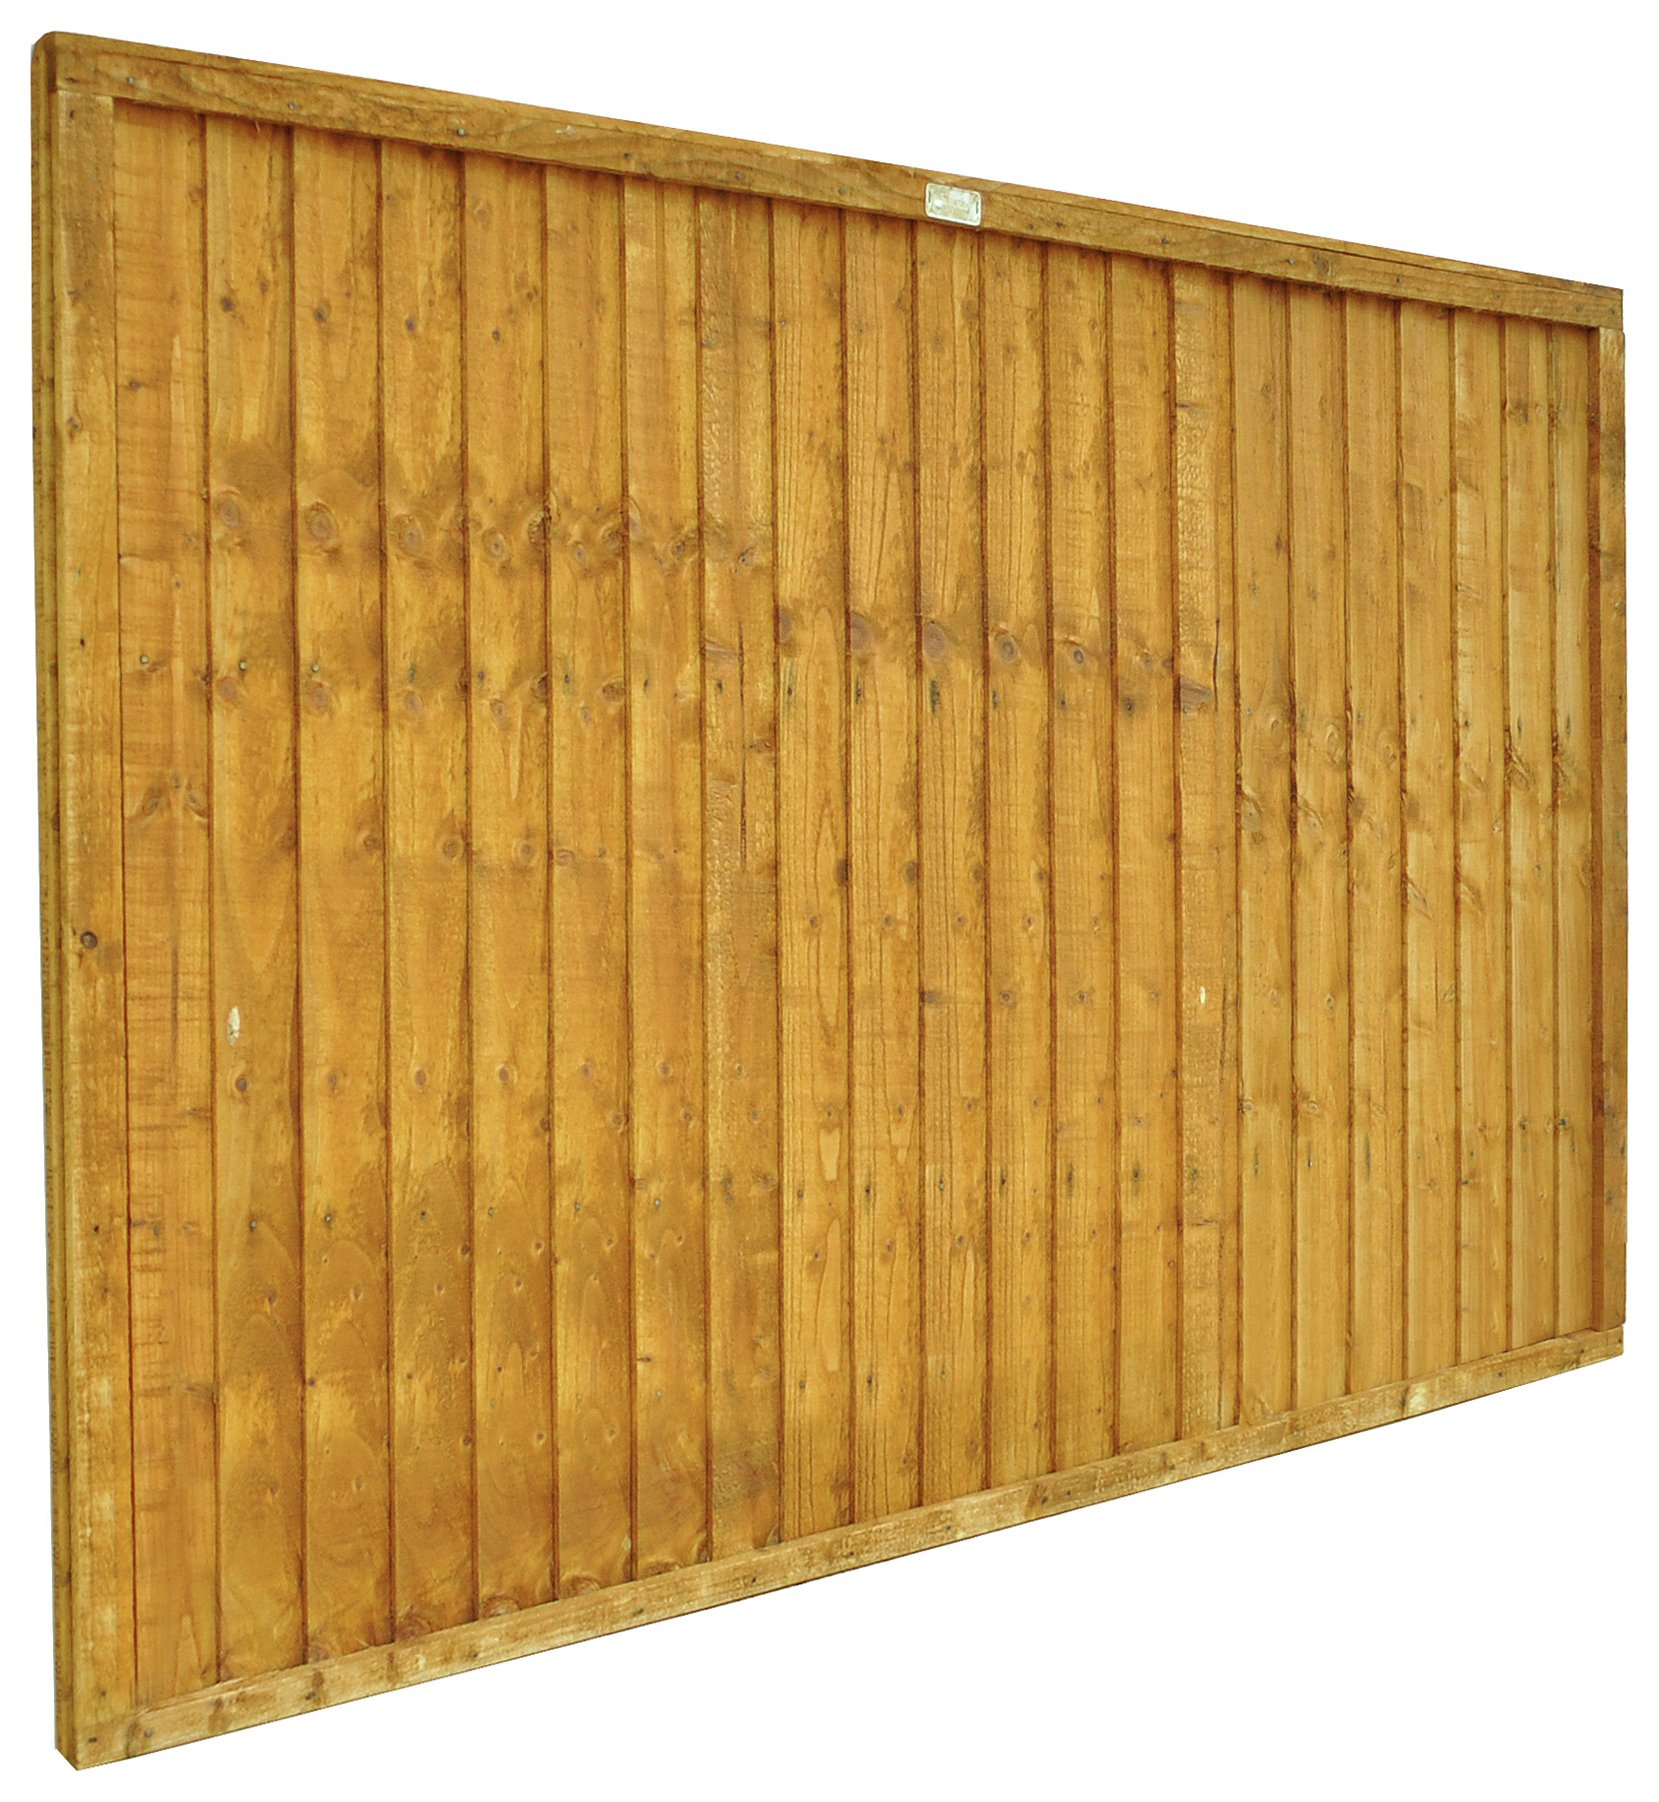 Forest 1.2m Closeboard Fence Panel - Pack of 7. lowest price